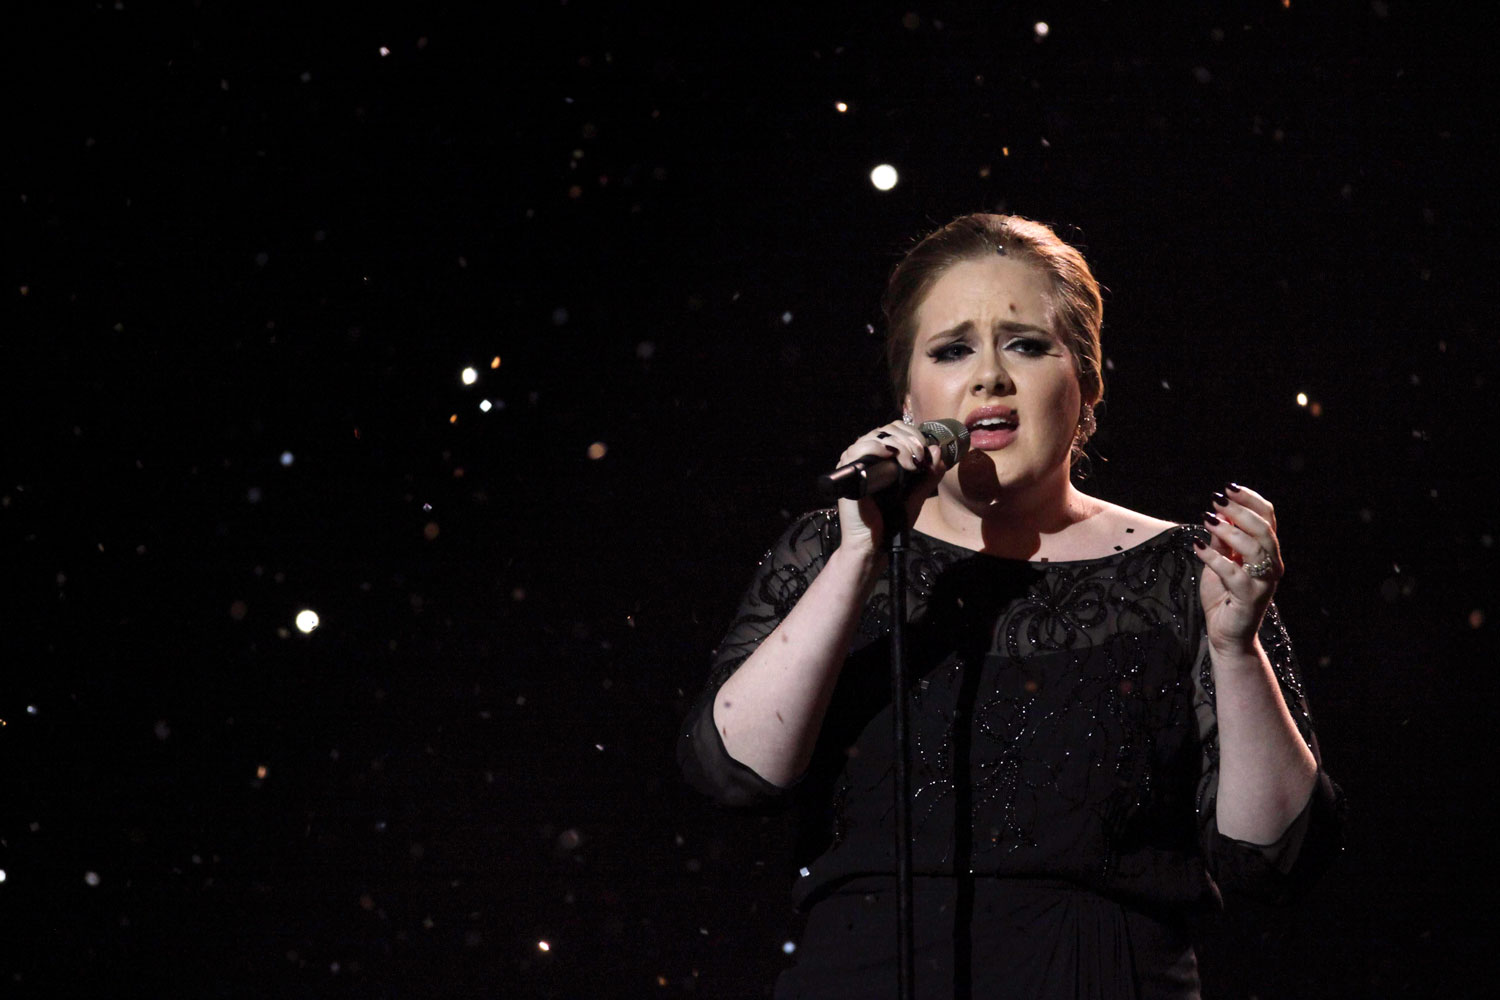 http://1.bp.blogspot.com/-33EIY4tp1q0/TVxN09U3EgI/AAAAAAAAAu4/S826uYJKz8k/s1600/Adele+Brit+Awards+2011+Someone+Like+You.jpg